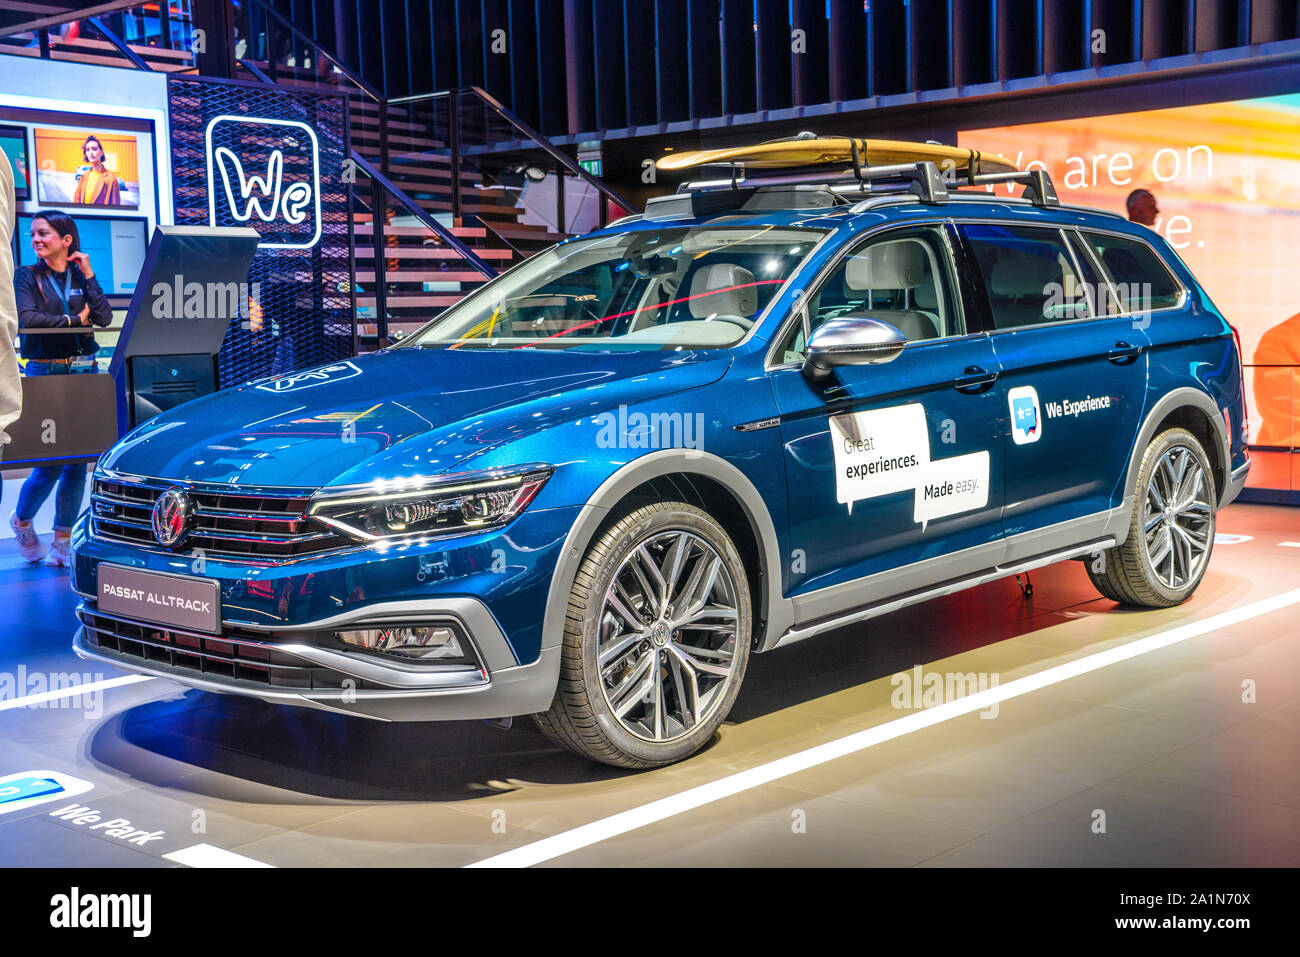 Page 3 Volkswagen Passat High Resolution Stock Photography And Images Alamy